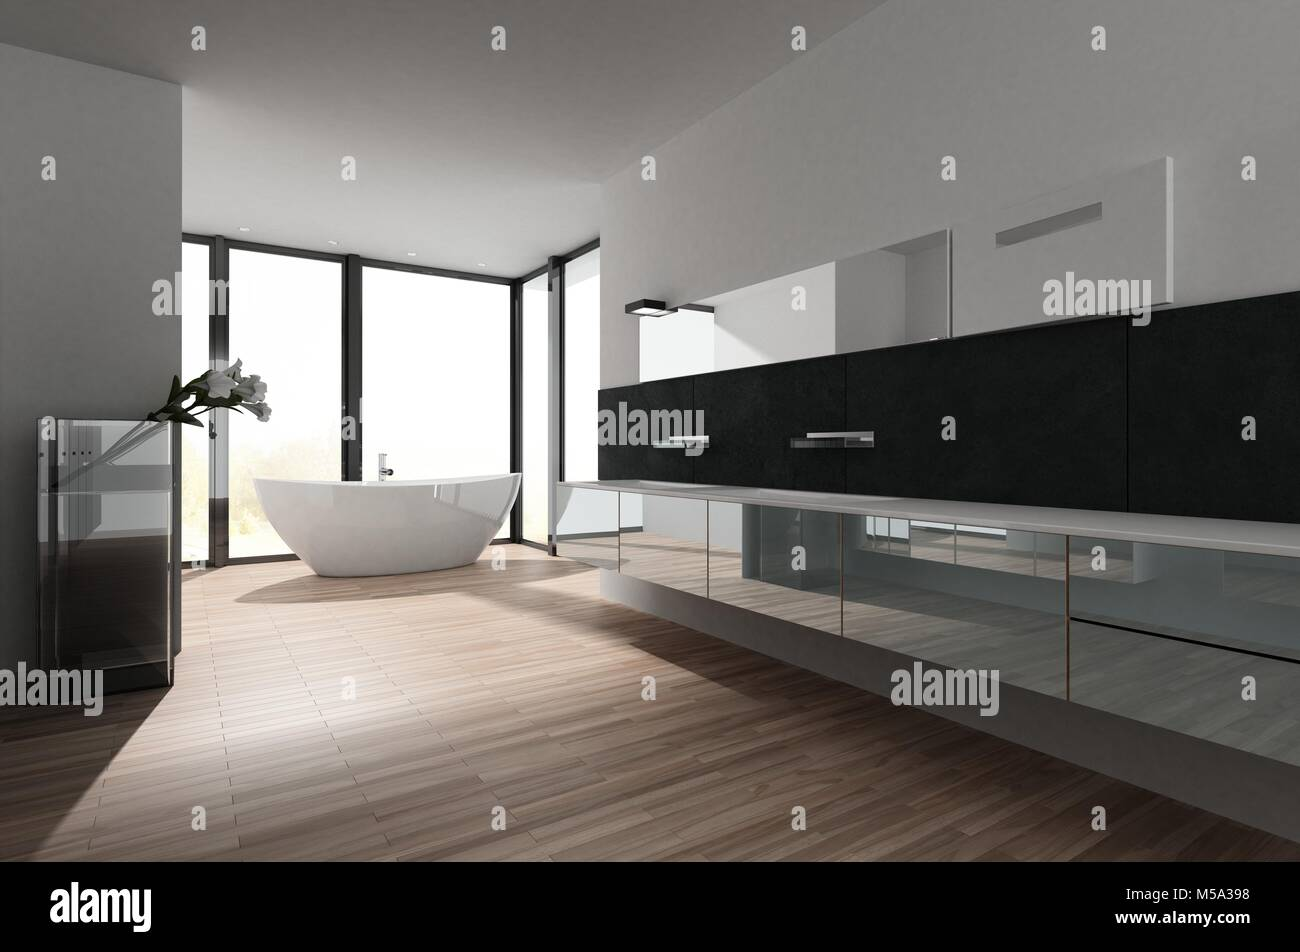 Large spacious bathroom interior with stylish freestanding tub in ...